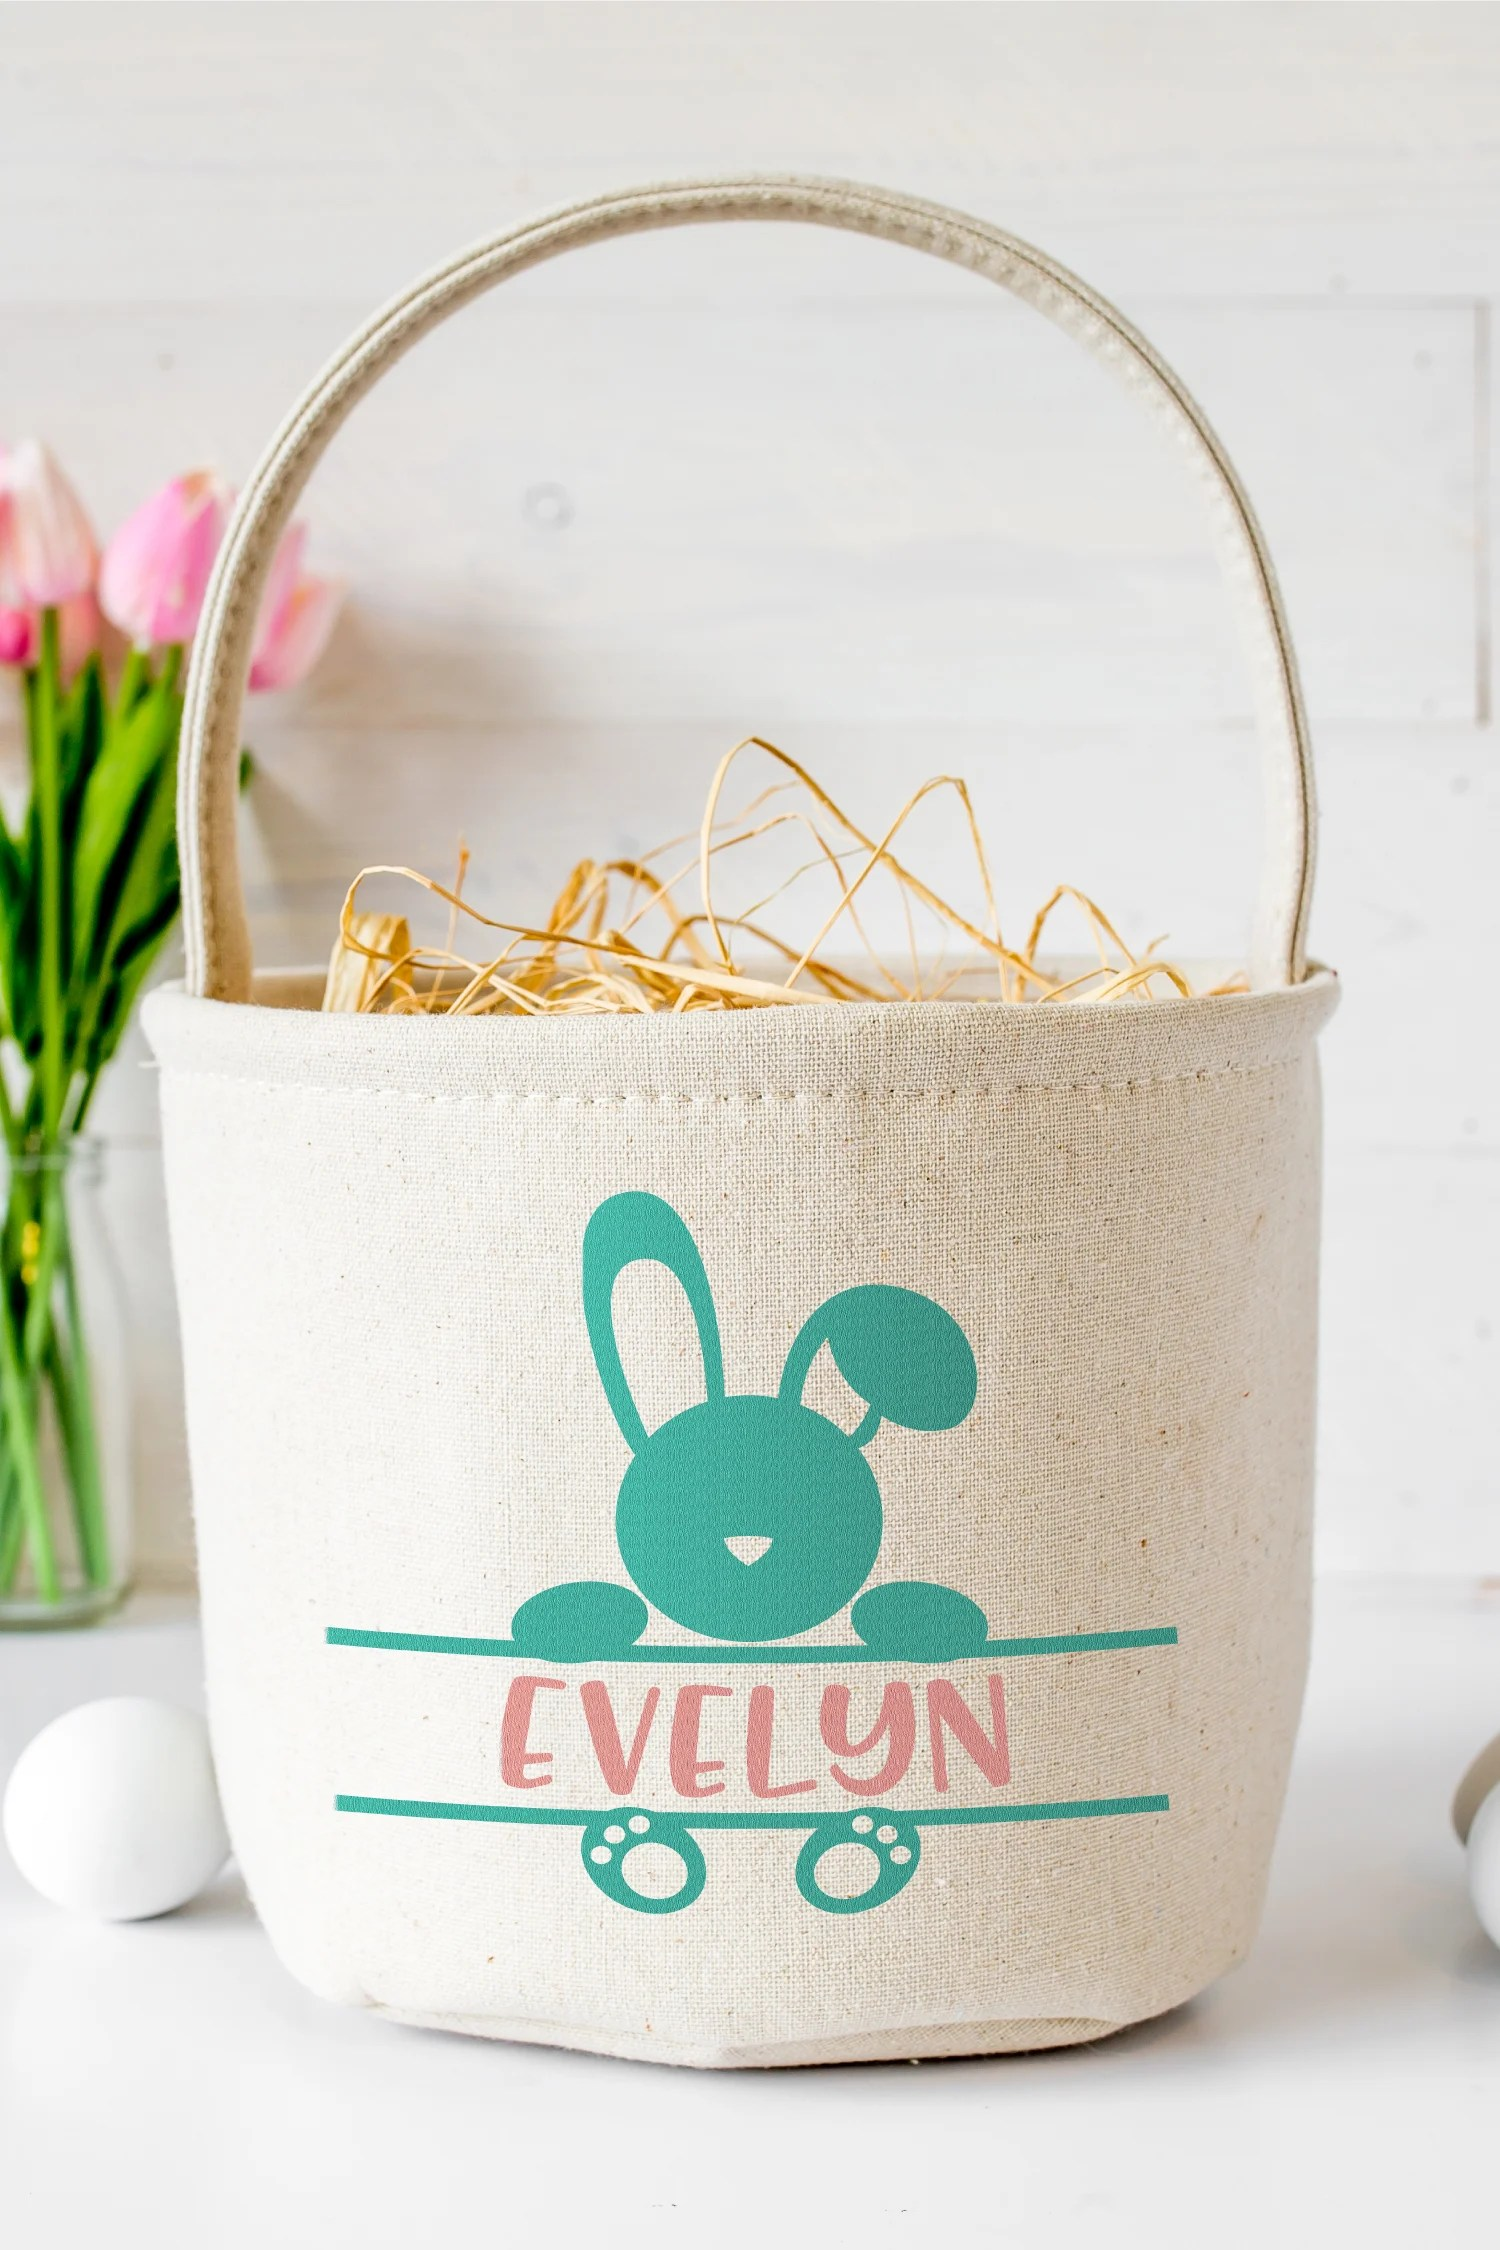 Make your Easter gifts and crafts even more customized with these Easter monogram SVG files! They're the perfect way to add some personalization to your little bunnies!